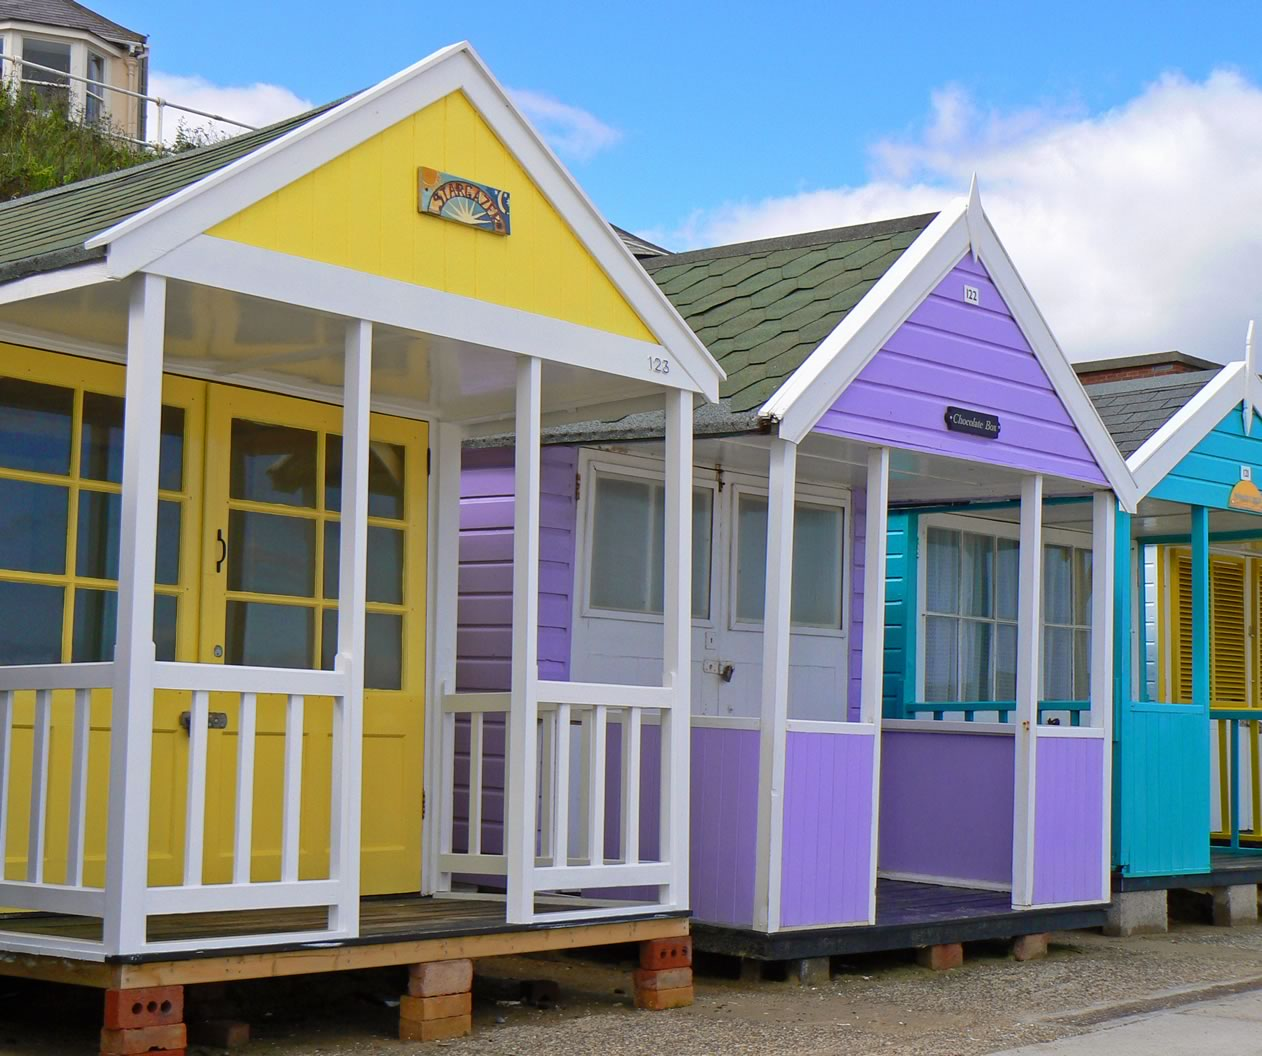 Retirement Bungalows For Sale: Southwold, Suffolk, Including The Pier Lighthouse And